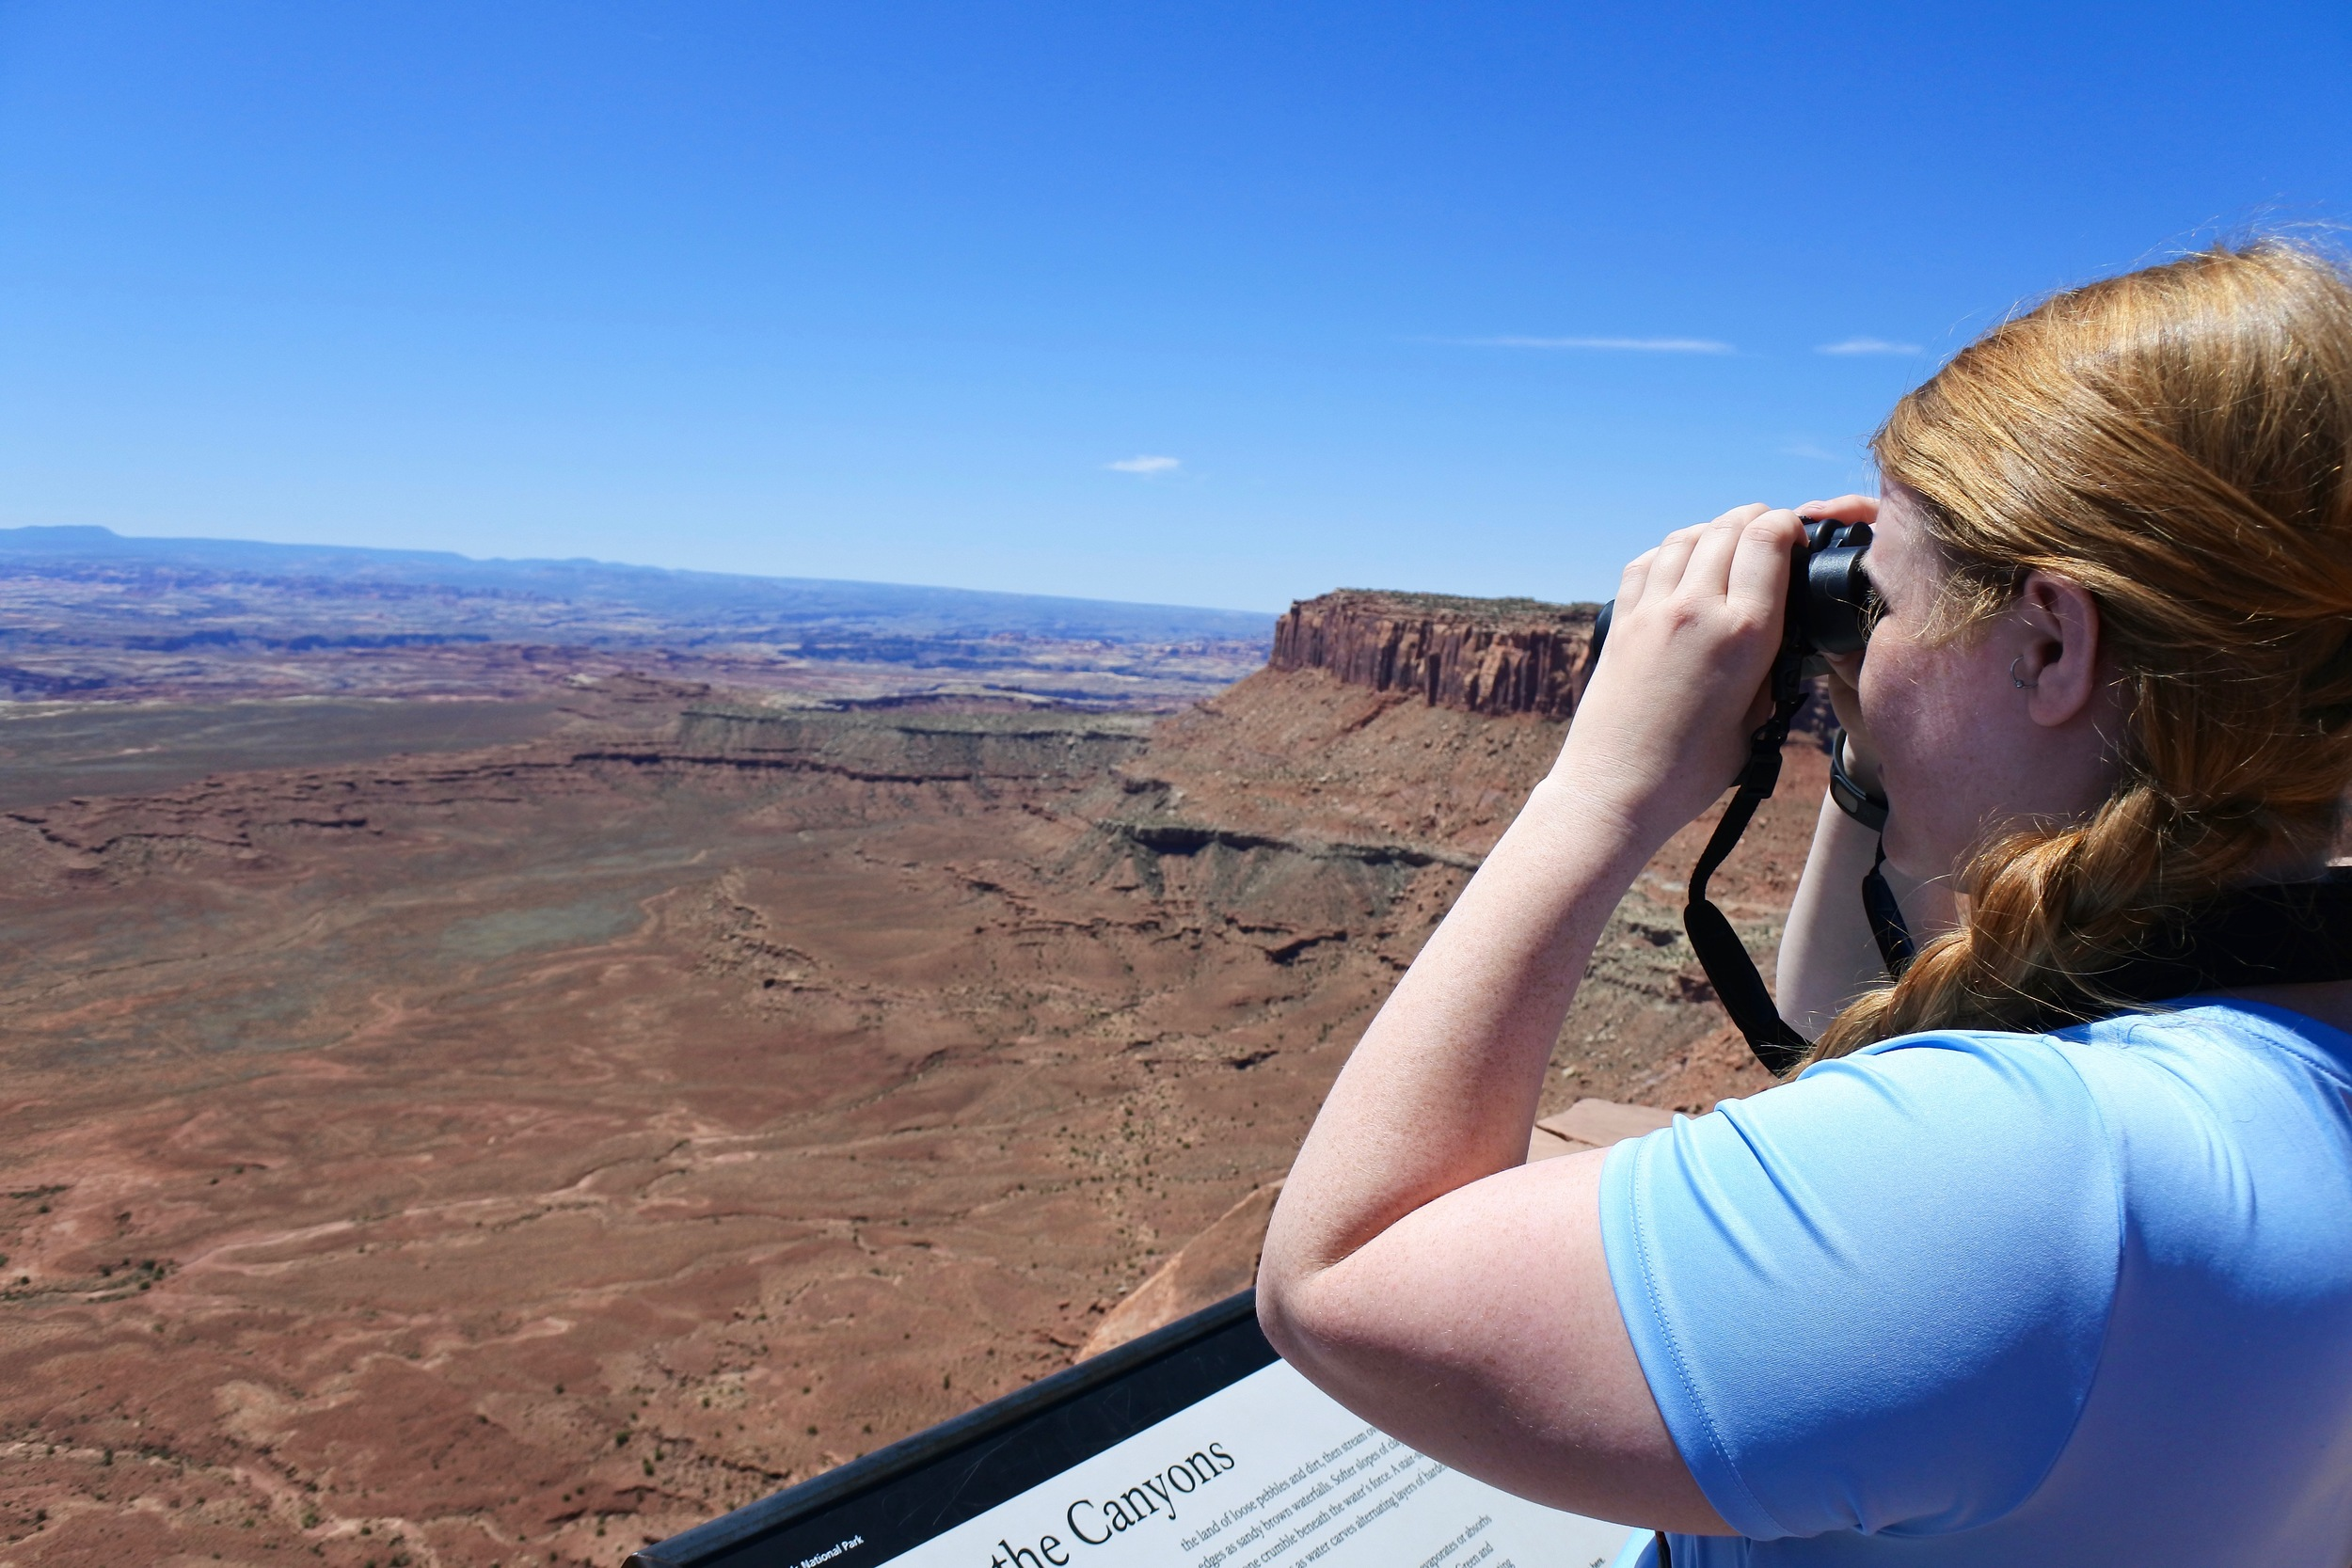 For my birthday, mom and dad got me some AMAZING binoculars - it was awesome to see the canyons up close and in such detail.